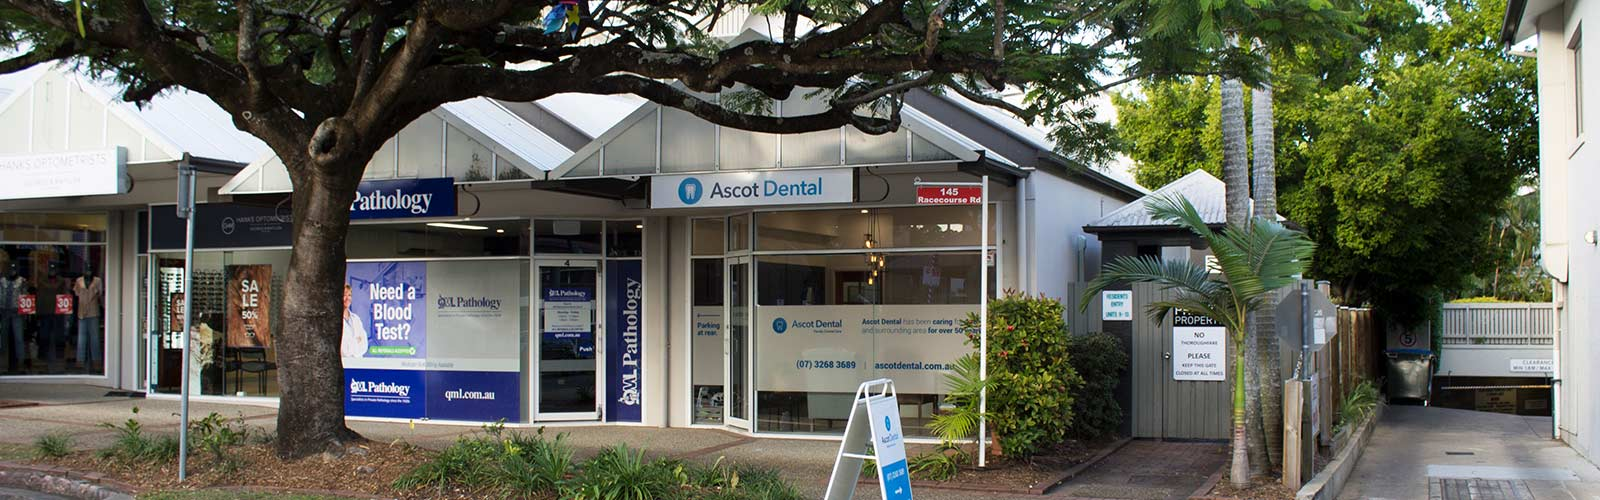 Ascot Dental Outside